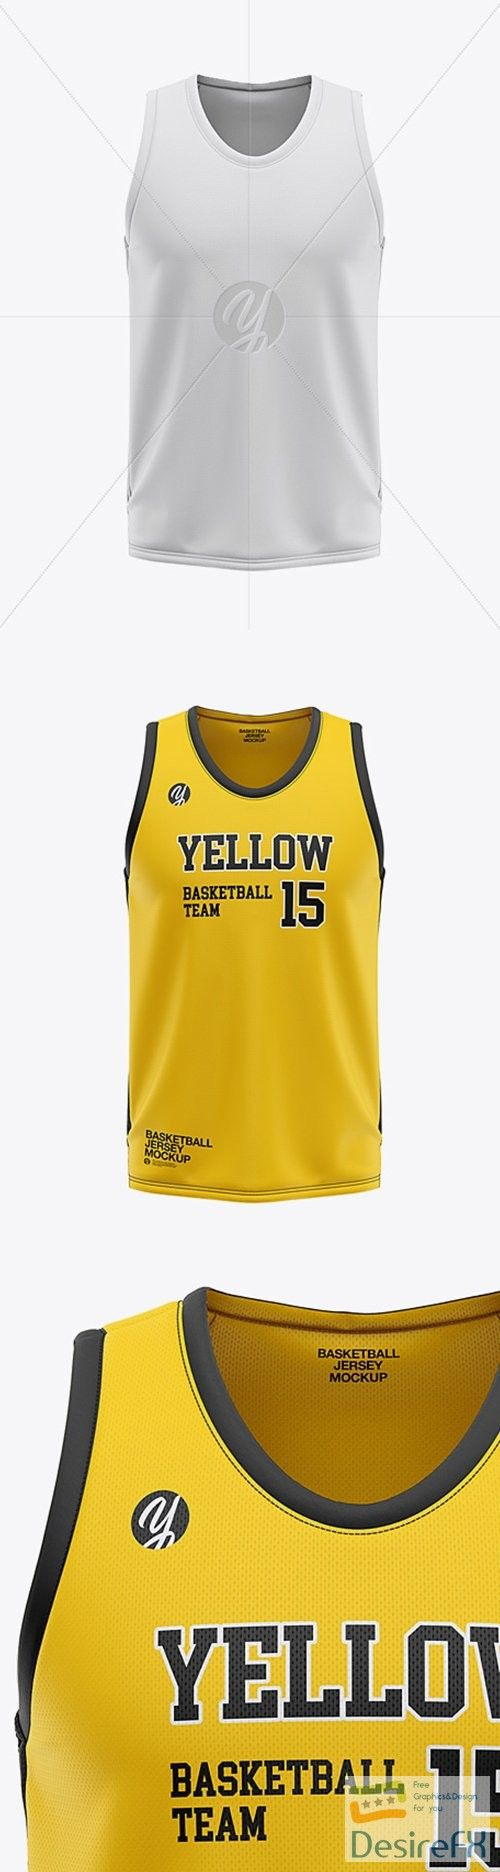 Download Download Mens U Neck Basketball Jersey Mockup Front View 36120 Desirefx Com Basketball Jersey U Neck Yellow Team